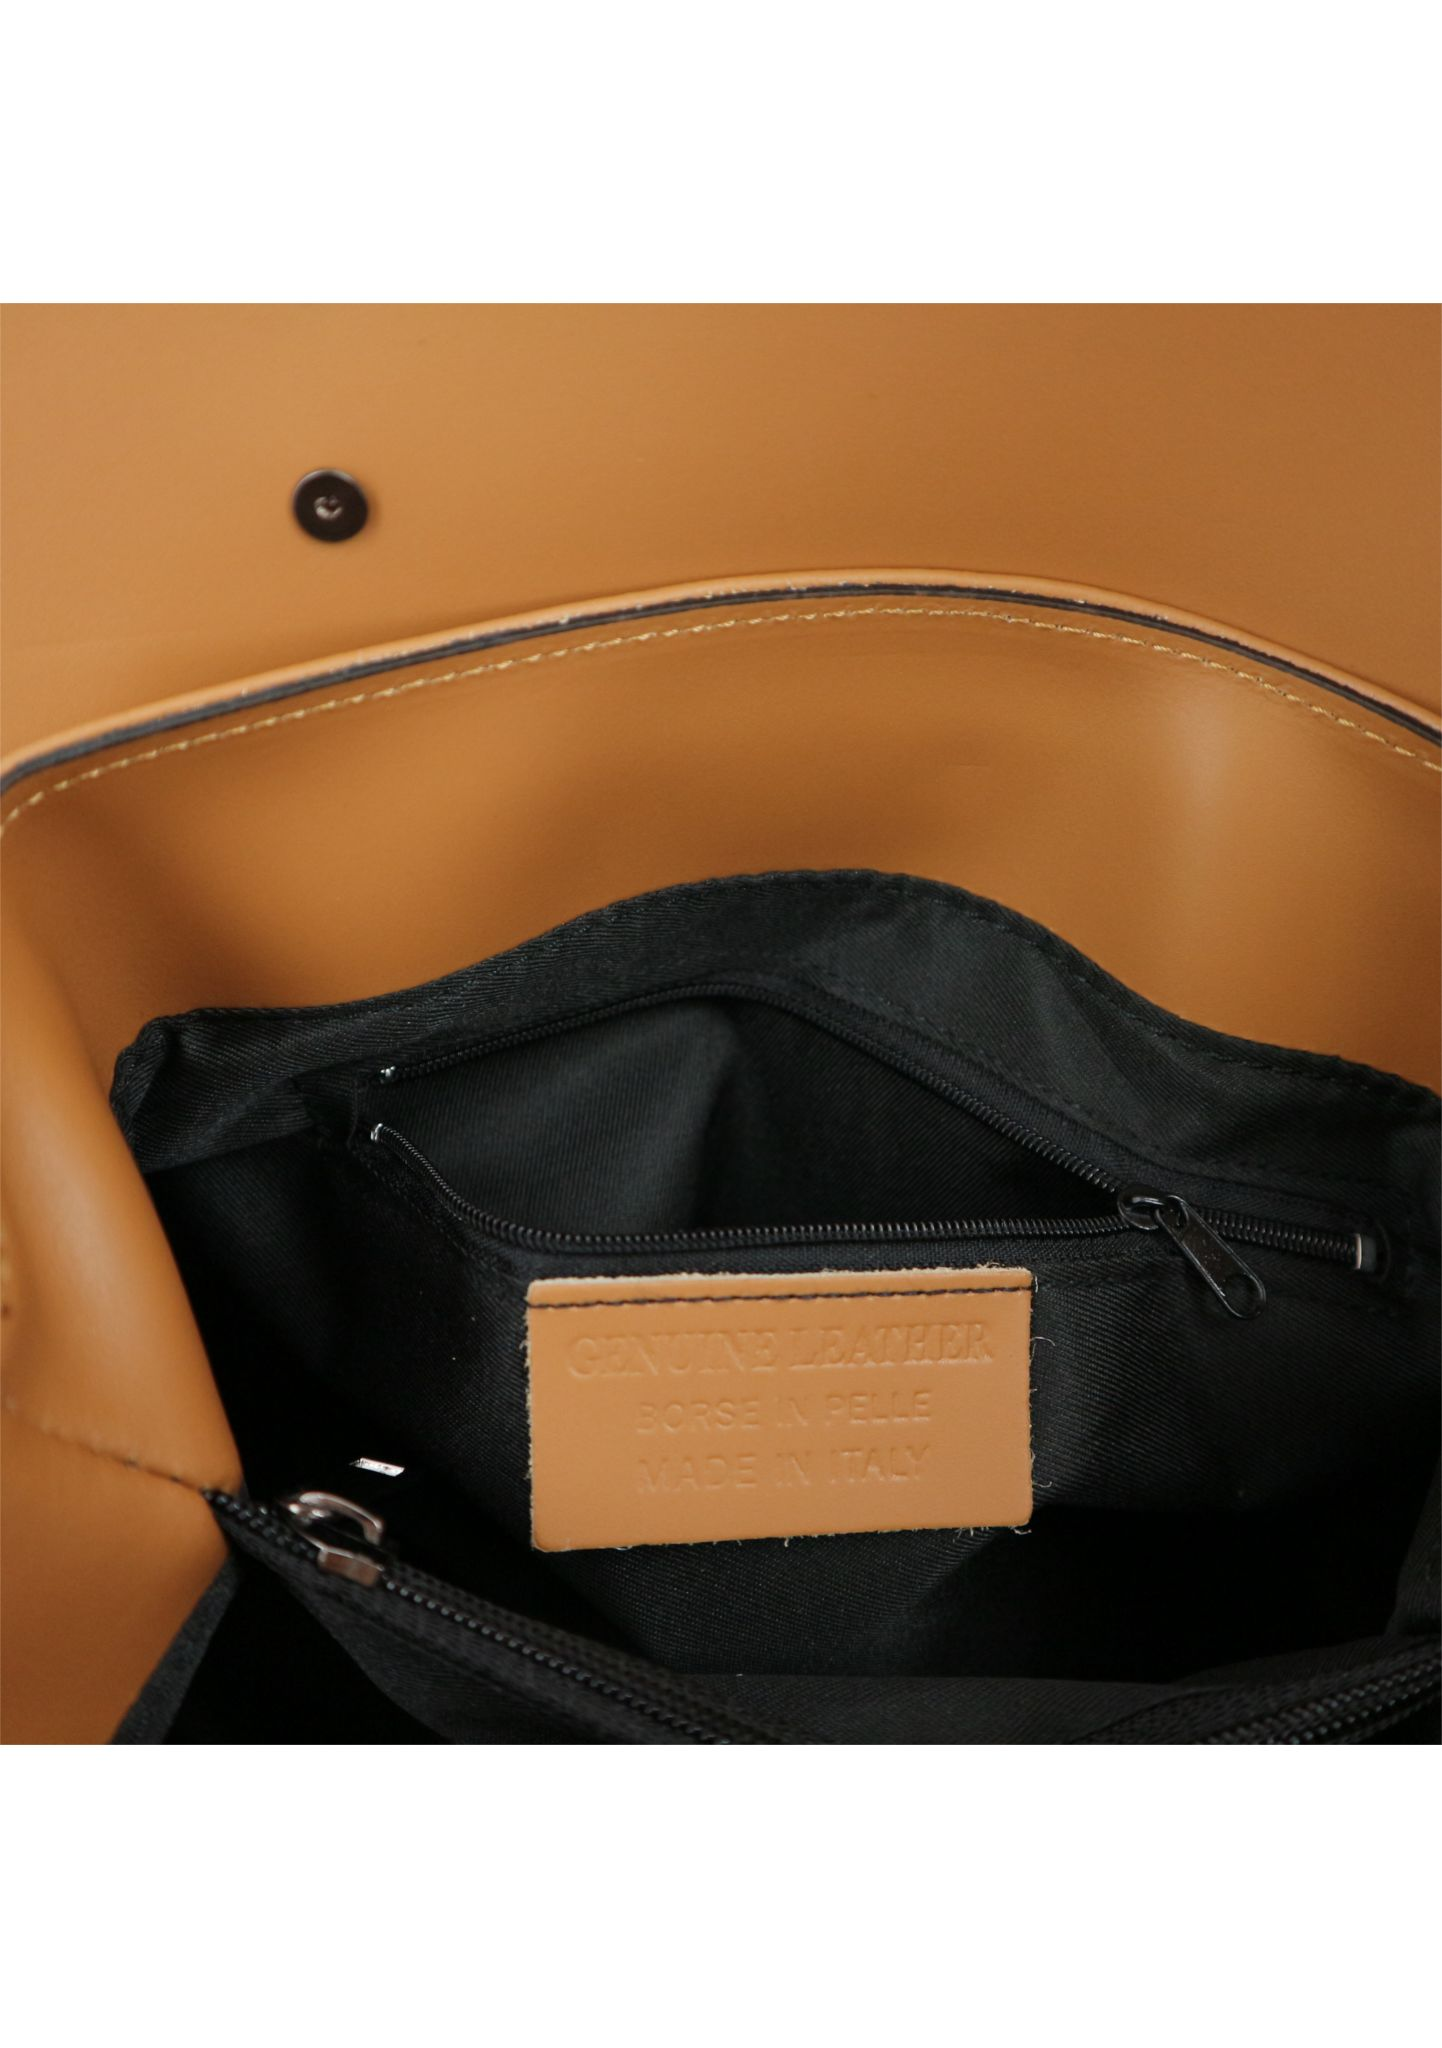 Cognac Ruga Leather Handbag With Detachable Strap 034 detail 7